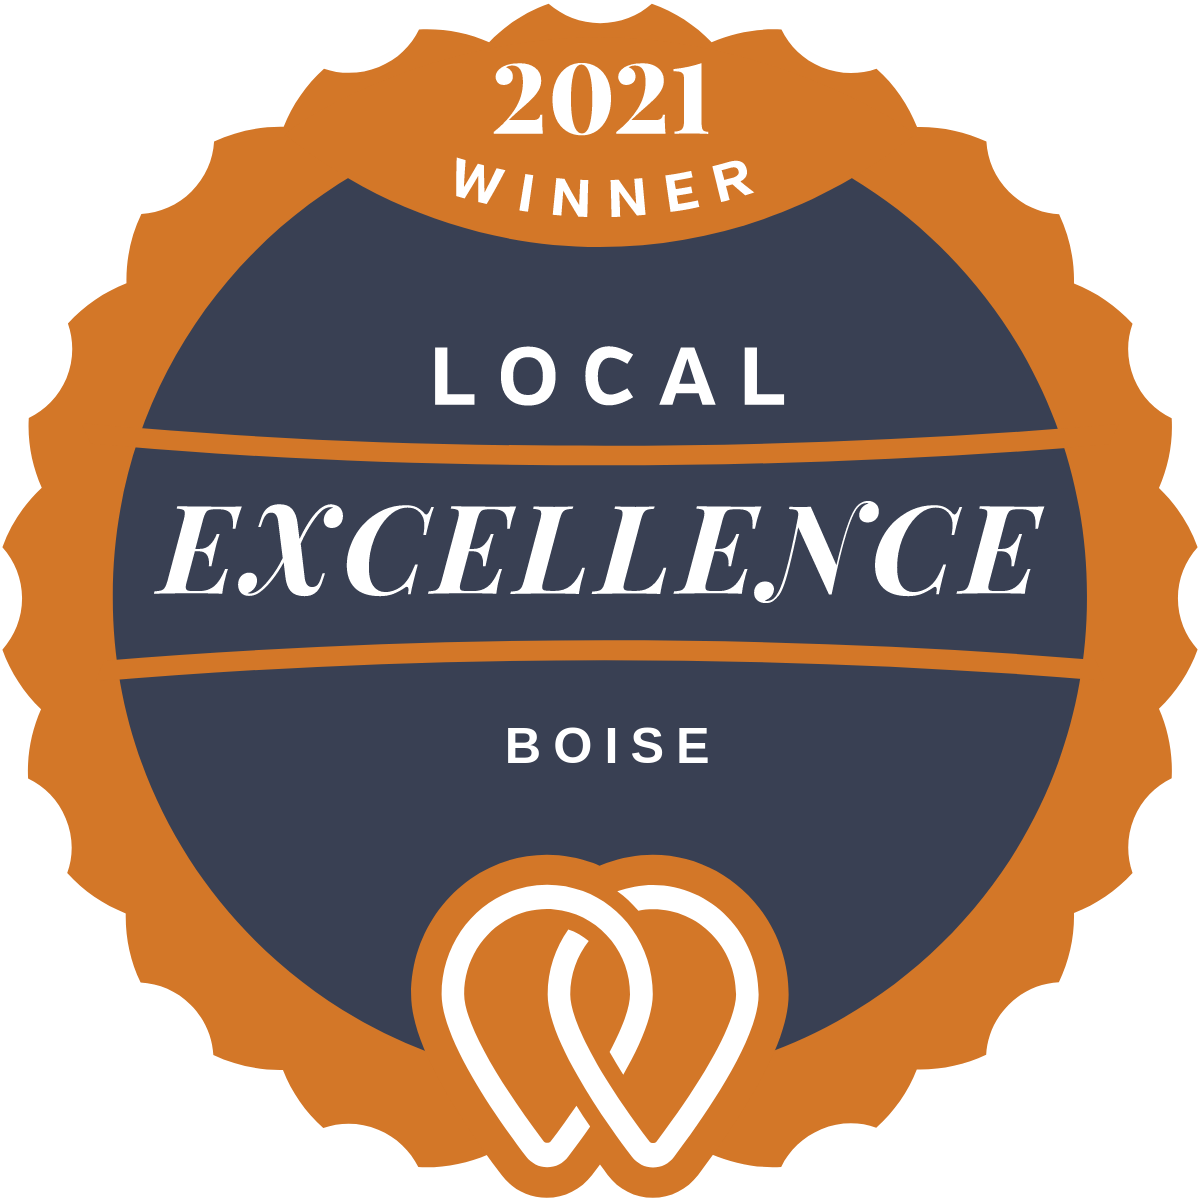 2021 Local Excellence Winner in Boise, ID